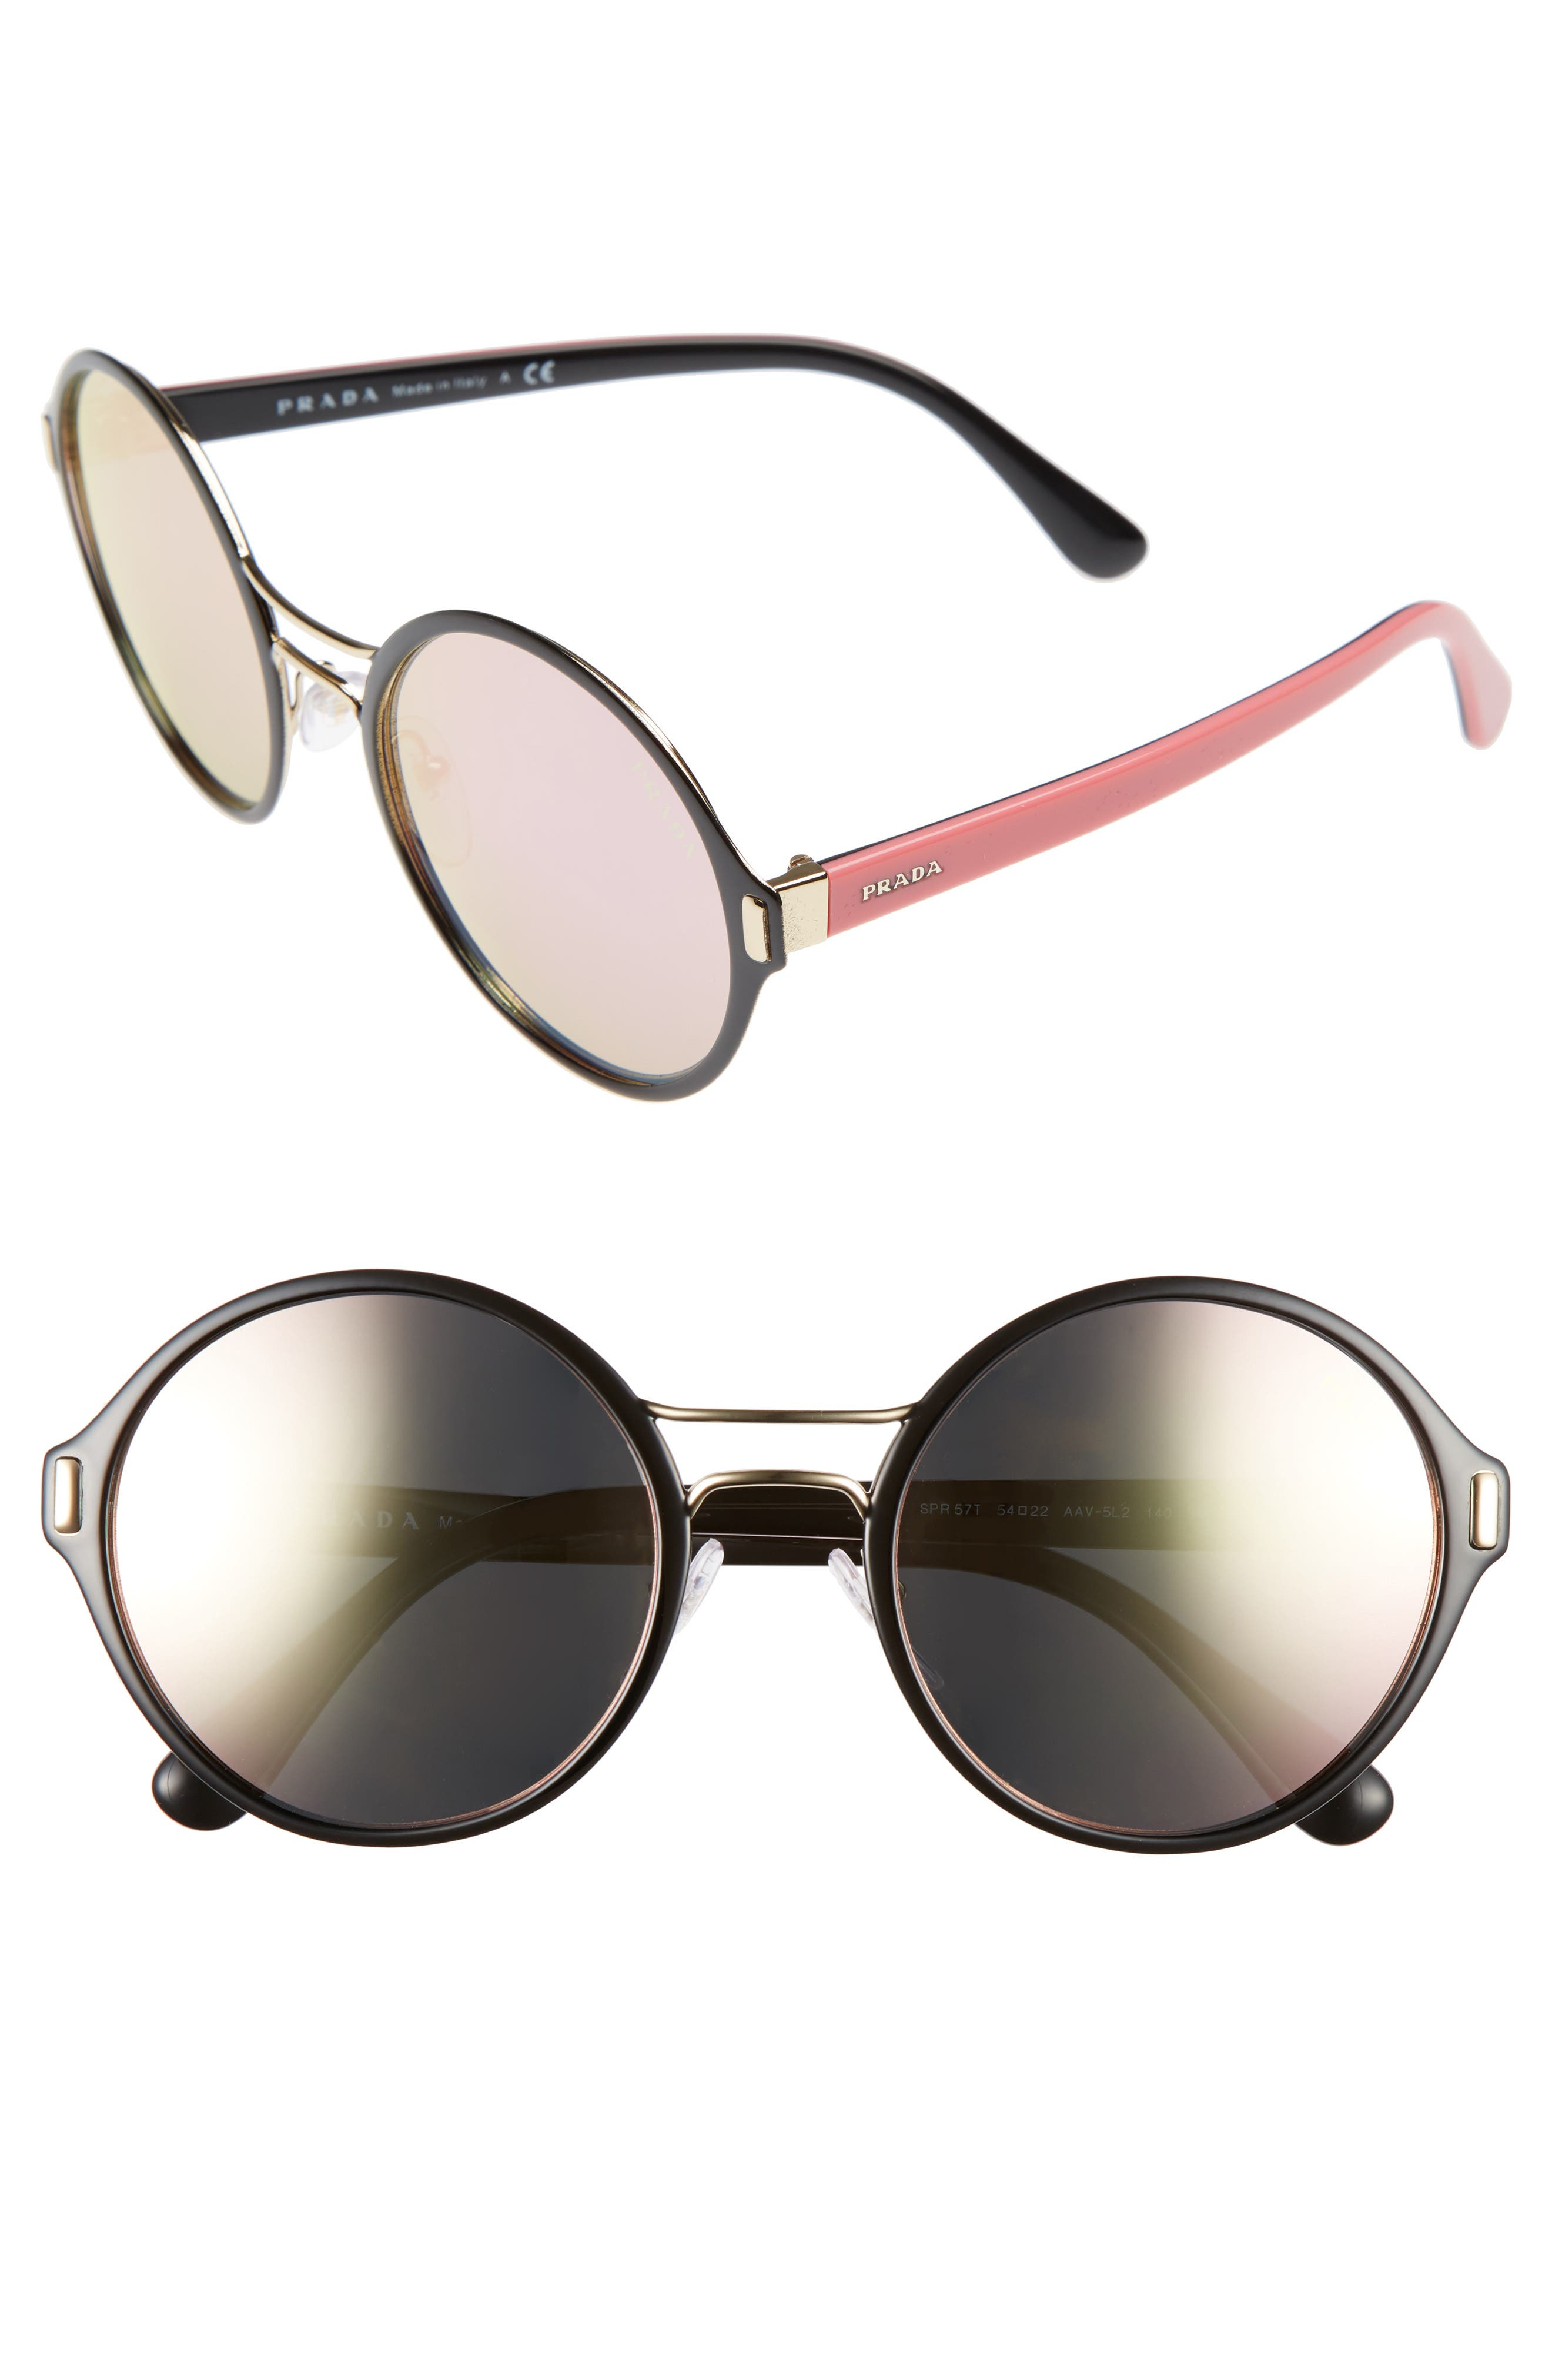 54mm Mirrored Round Sunglasses,                             Main thumbnail 1, color,                             Gold/ Black